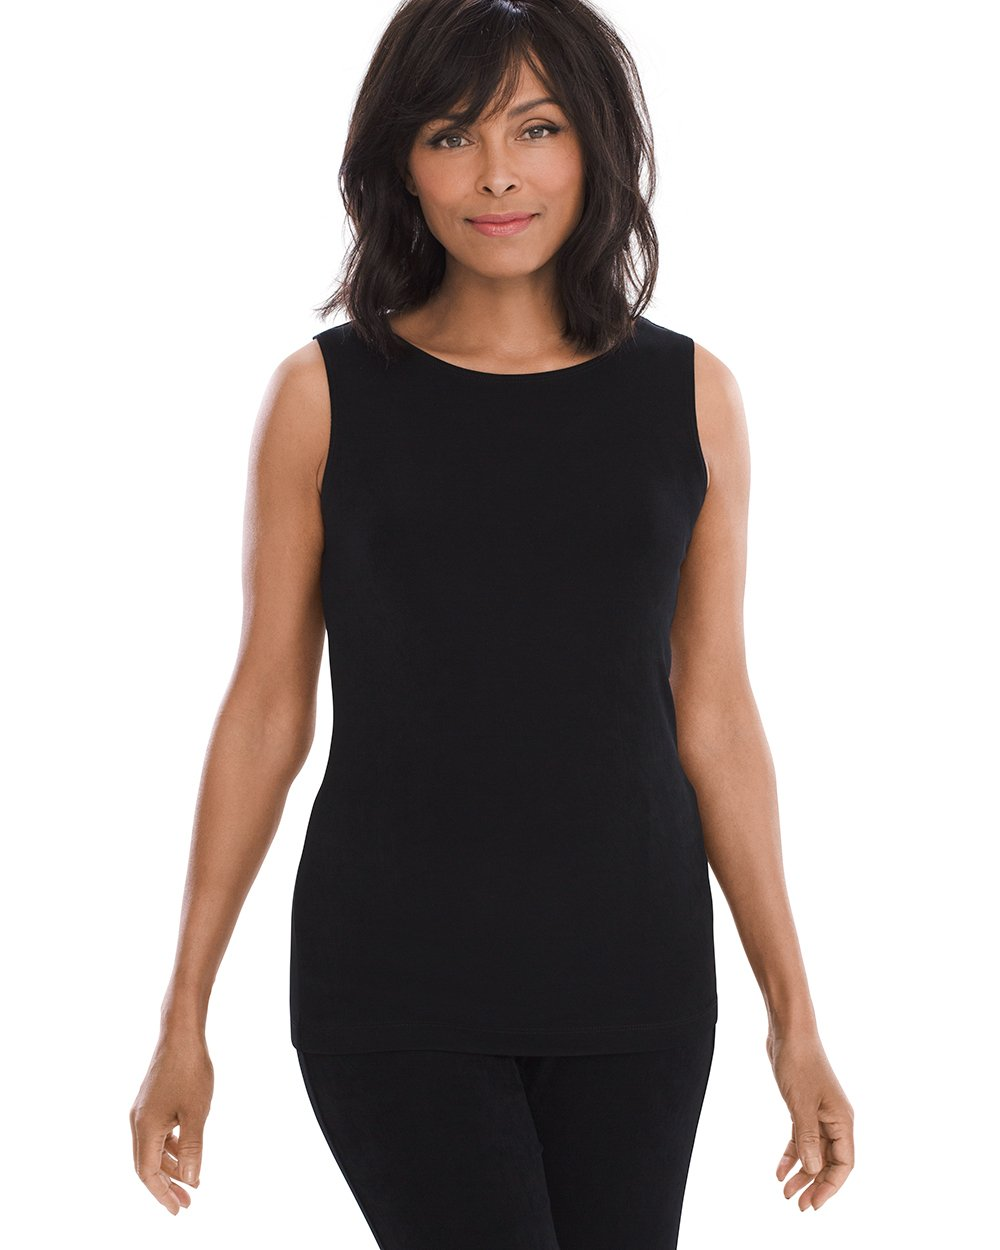 Chico's Women's Travelers Classic Essential Reversible Tank Size 4/6 S (0) Black